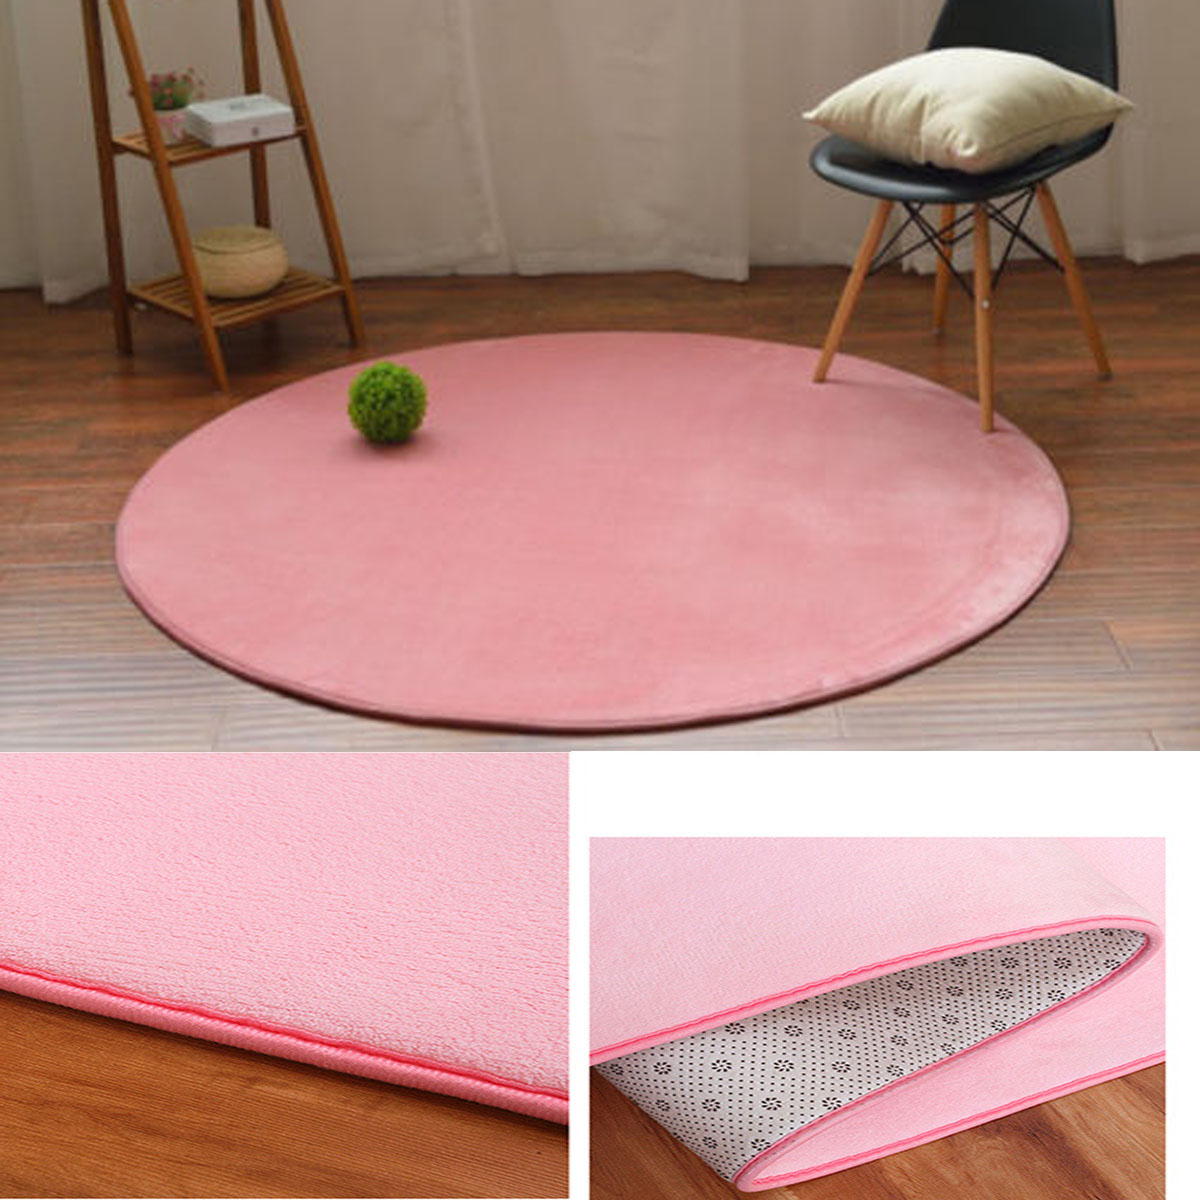 Details About Round Cute Mat Kids Harmless Blanket Carpet Rug Pink